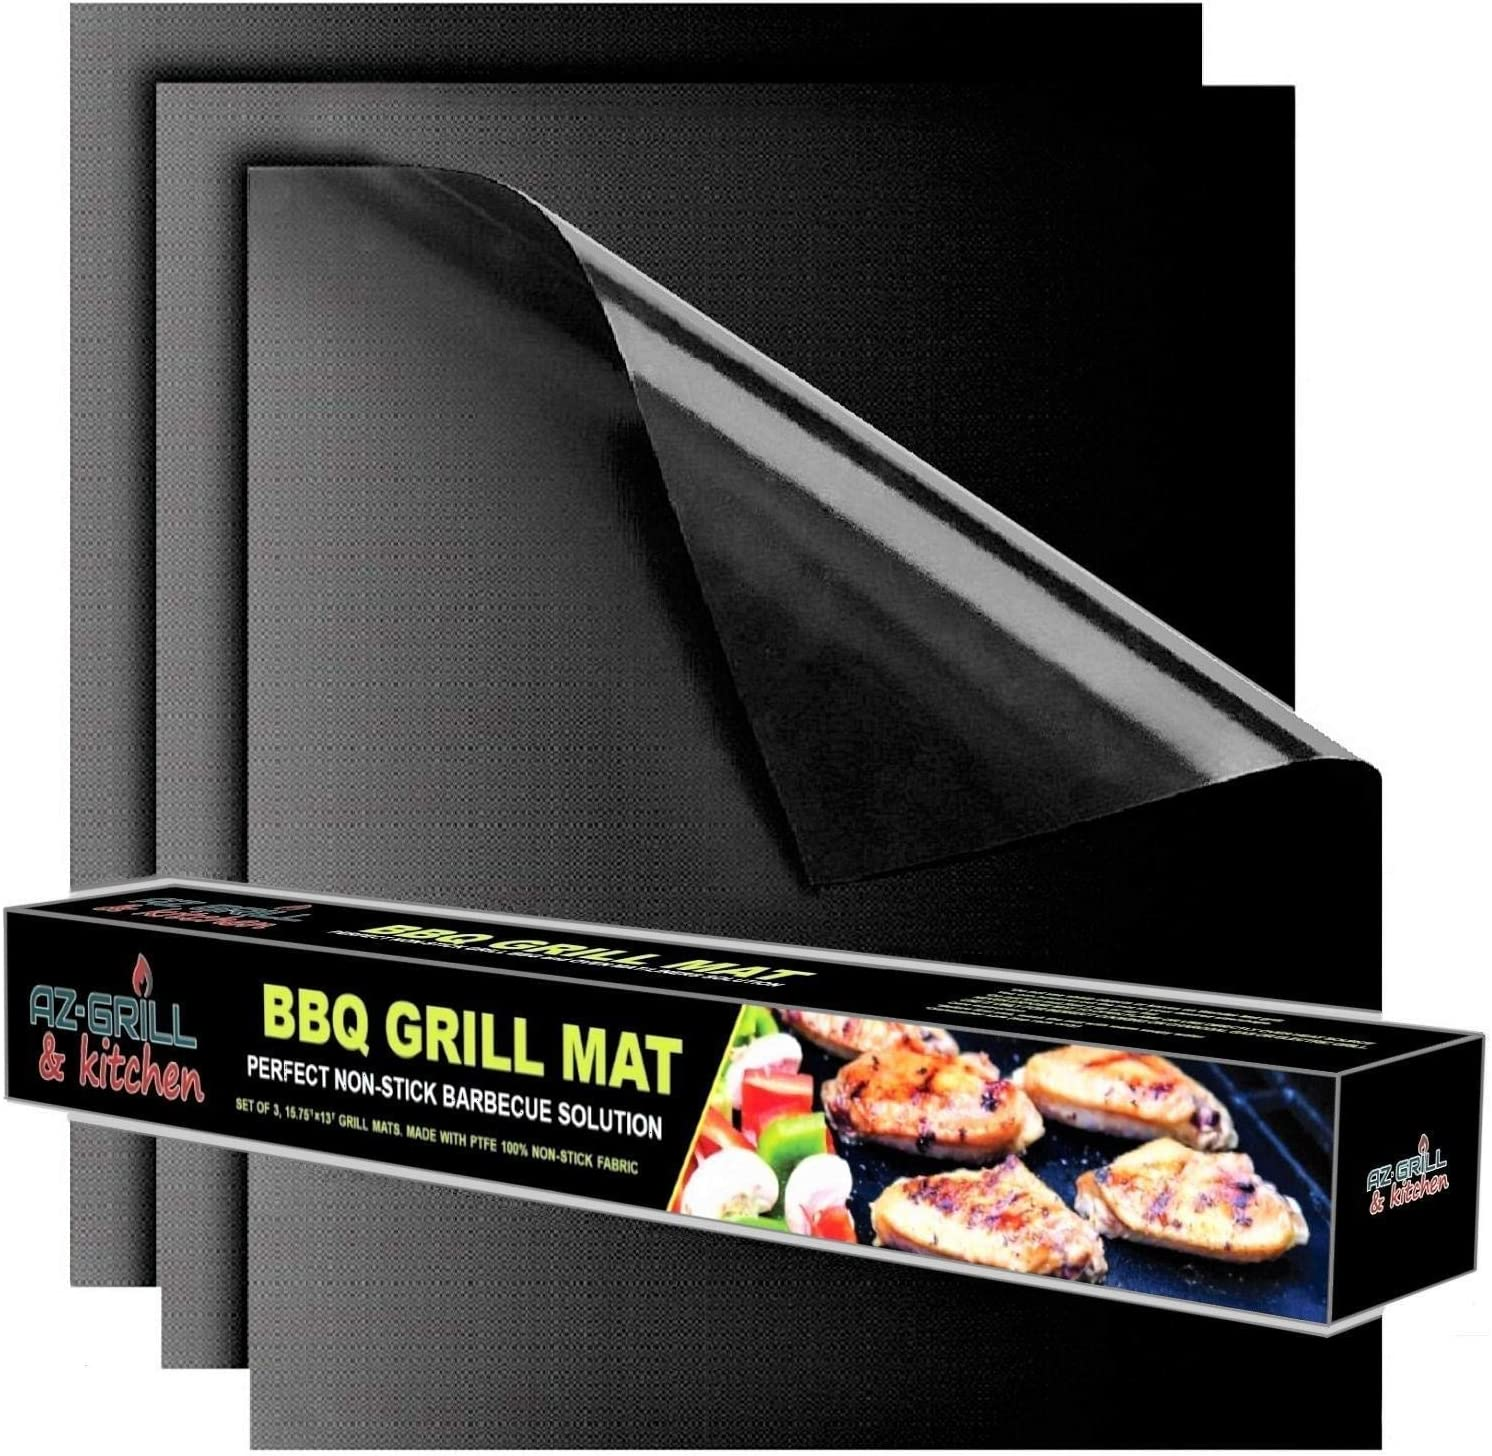 Grill mat Set of 3 – BBQ Grill Mats Non Stick Reusable – Grilling mats for Gas Grill – Baking Pads Nonstick use on Charcoal Electric Grills – Easy to Clean Outdoor Barbeque Grilling Accessories Black